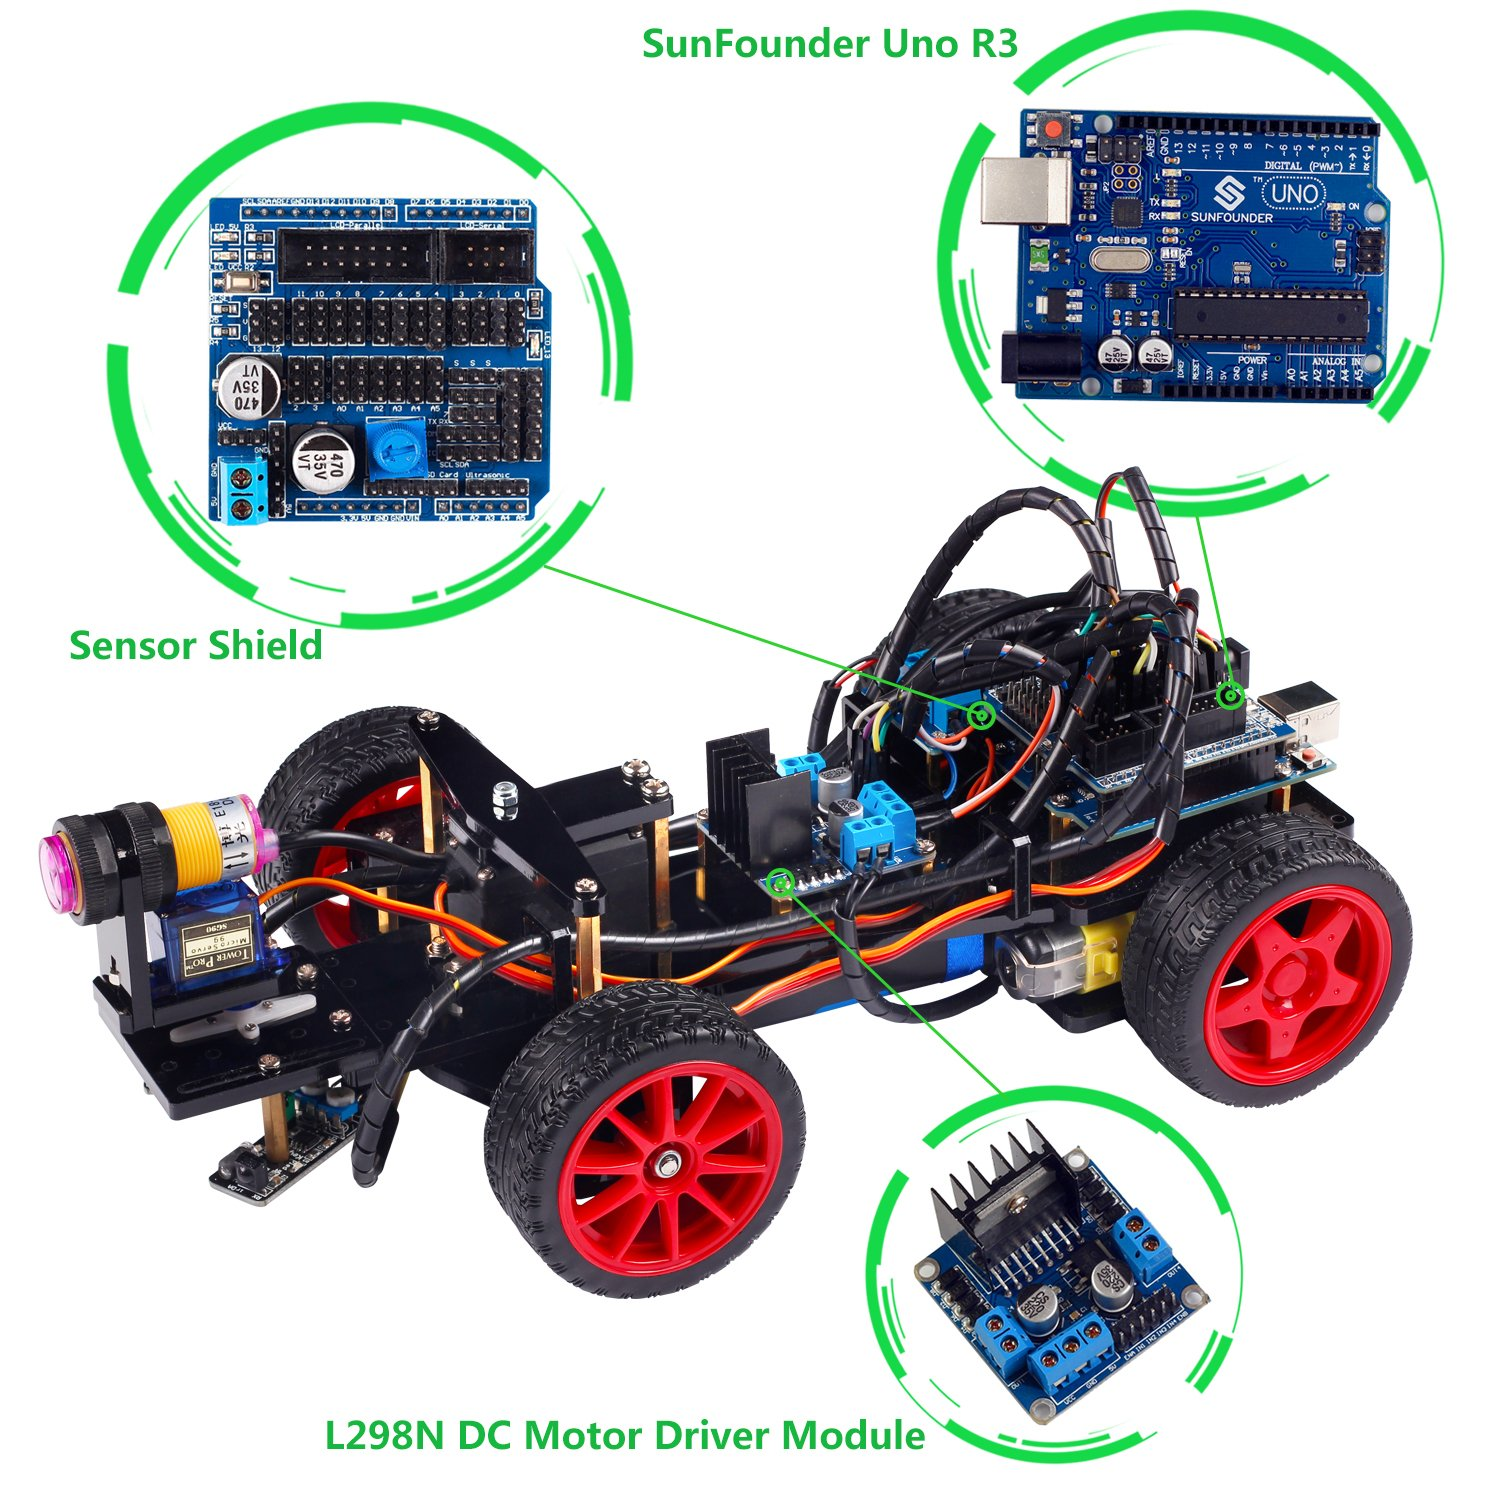 SunFounder Smart Car Kit for Arduino with Uno R3, Obstacle Avoiding, Line Tracing and Light Seeking